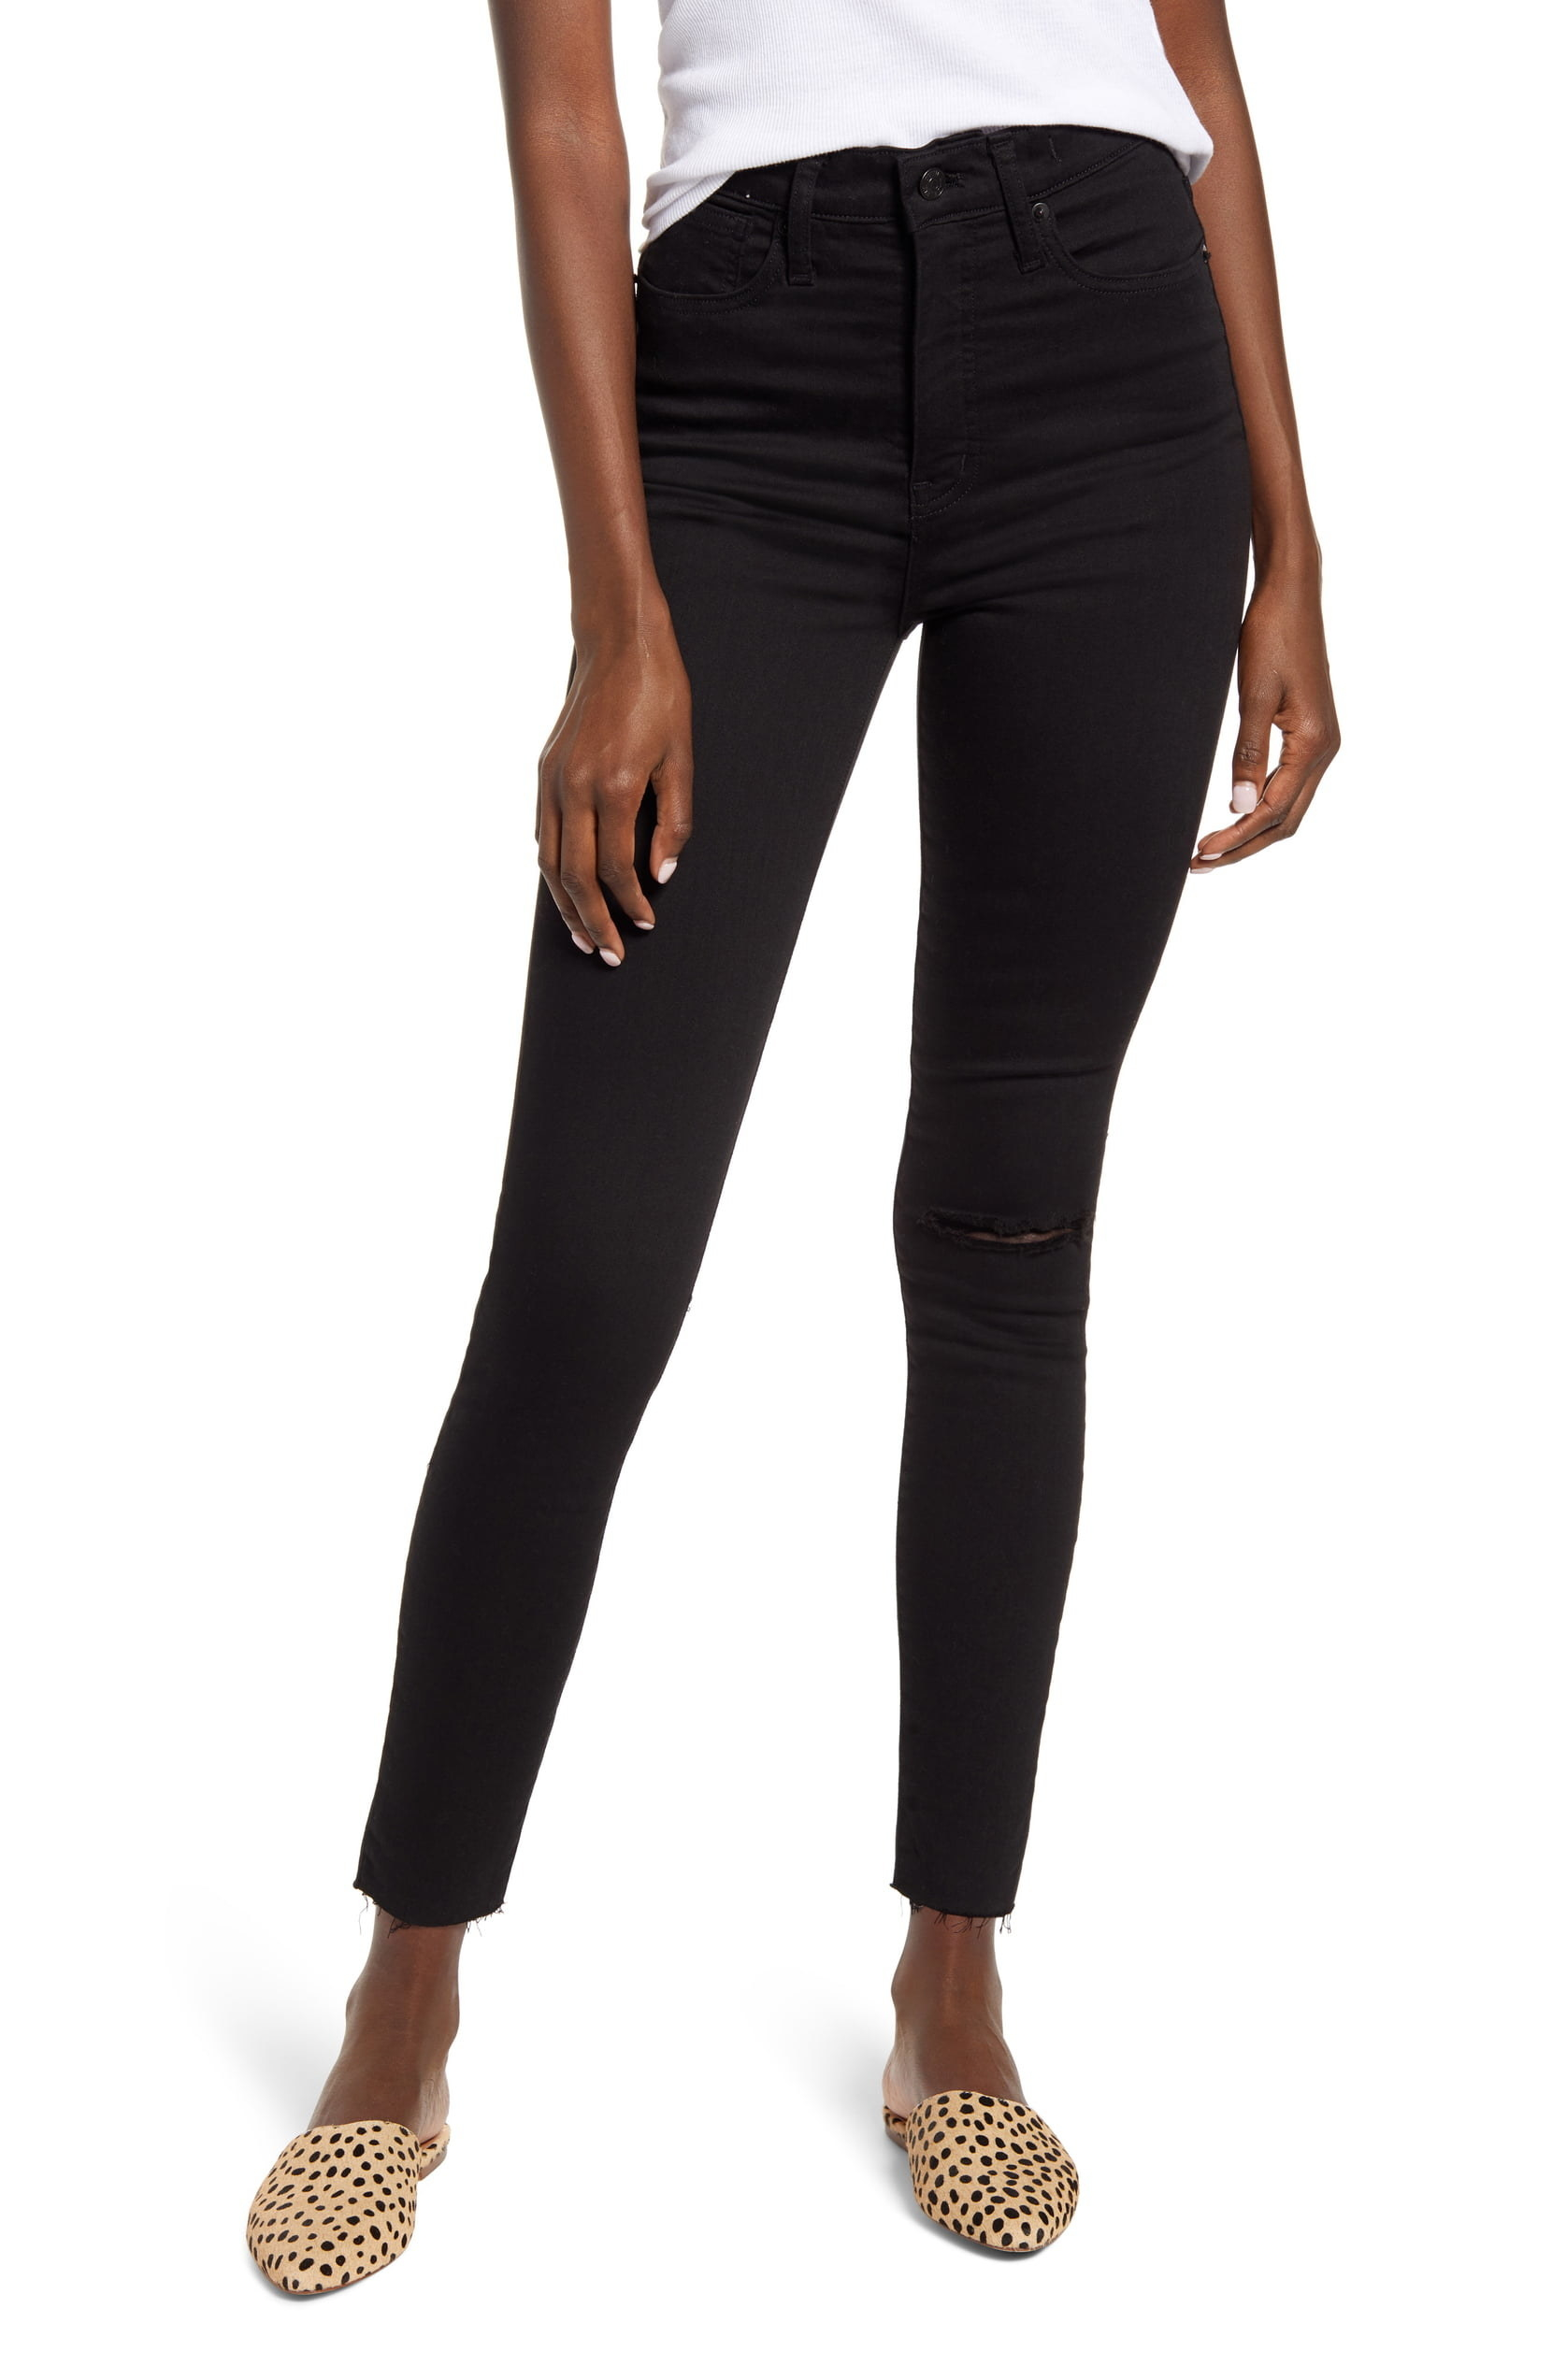 A model wearing the Madewell 11-Inch High-Rise Skinny Jeans.